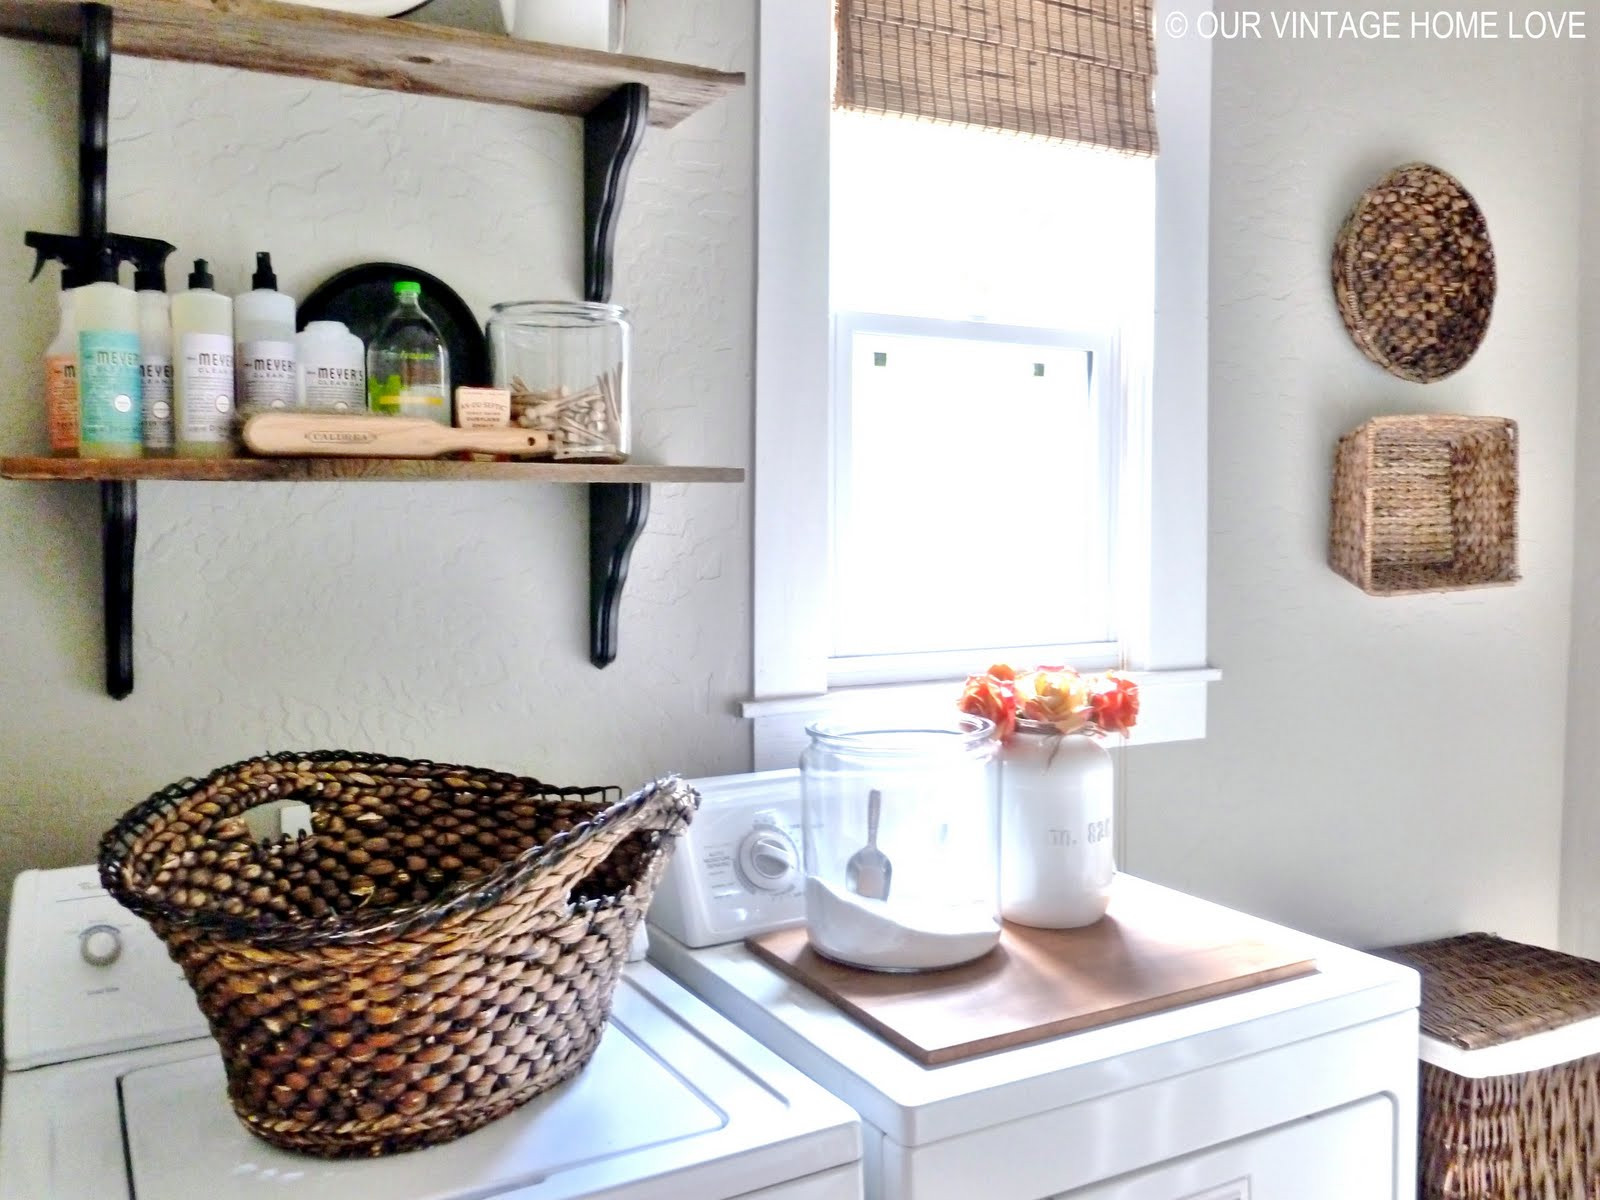 Best ideas about Laundry Room Accessories . Save or Pin vintage home love Laundry Room Ideas and a Vintage Now.